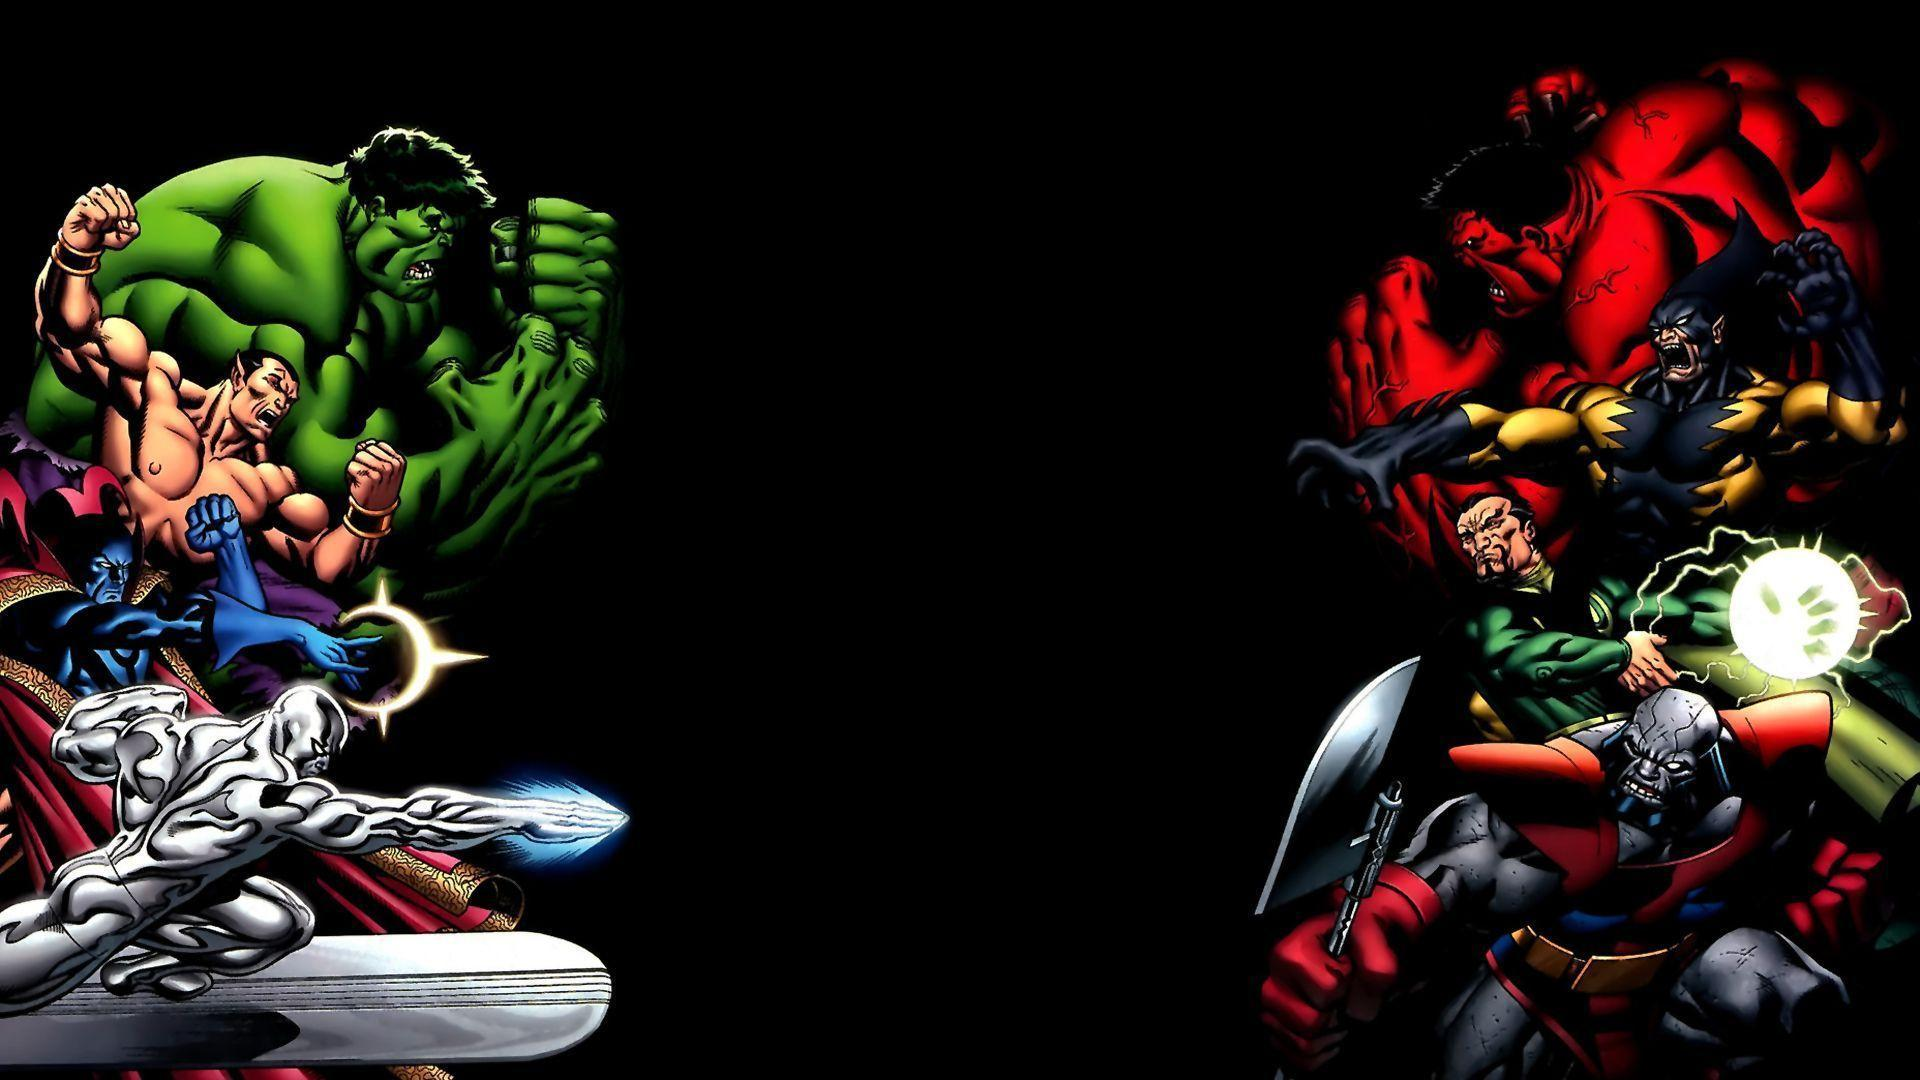 red hulk vs green hulk and Wallpapers 1920x1080